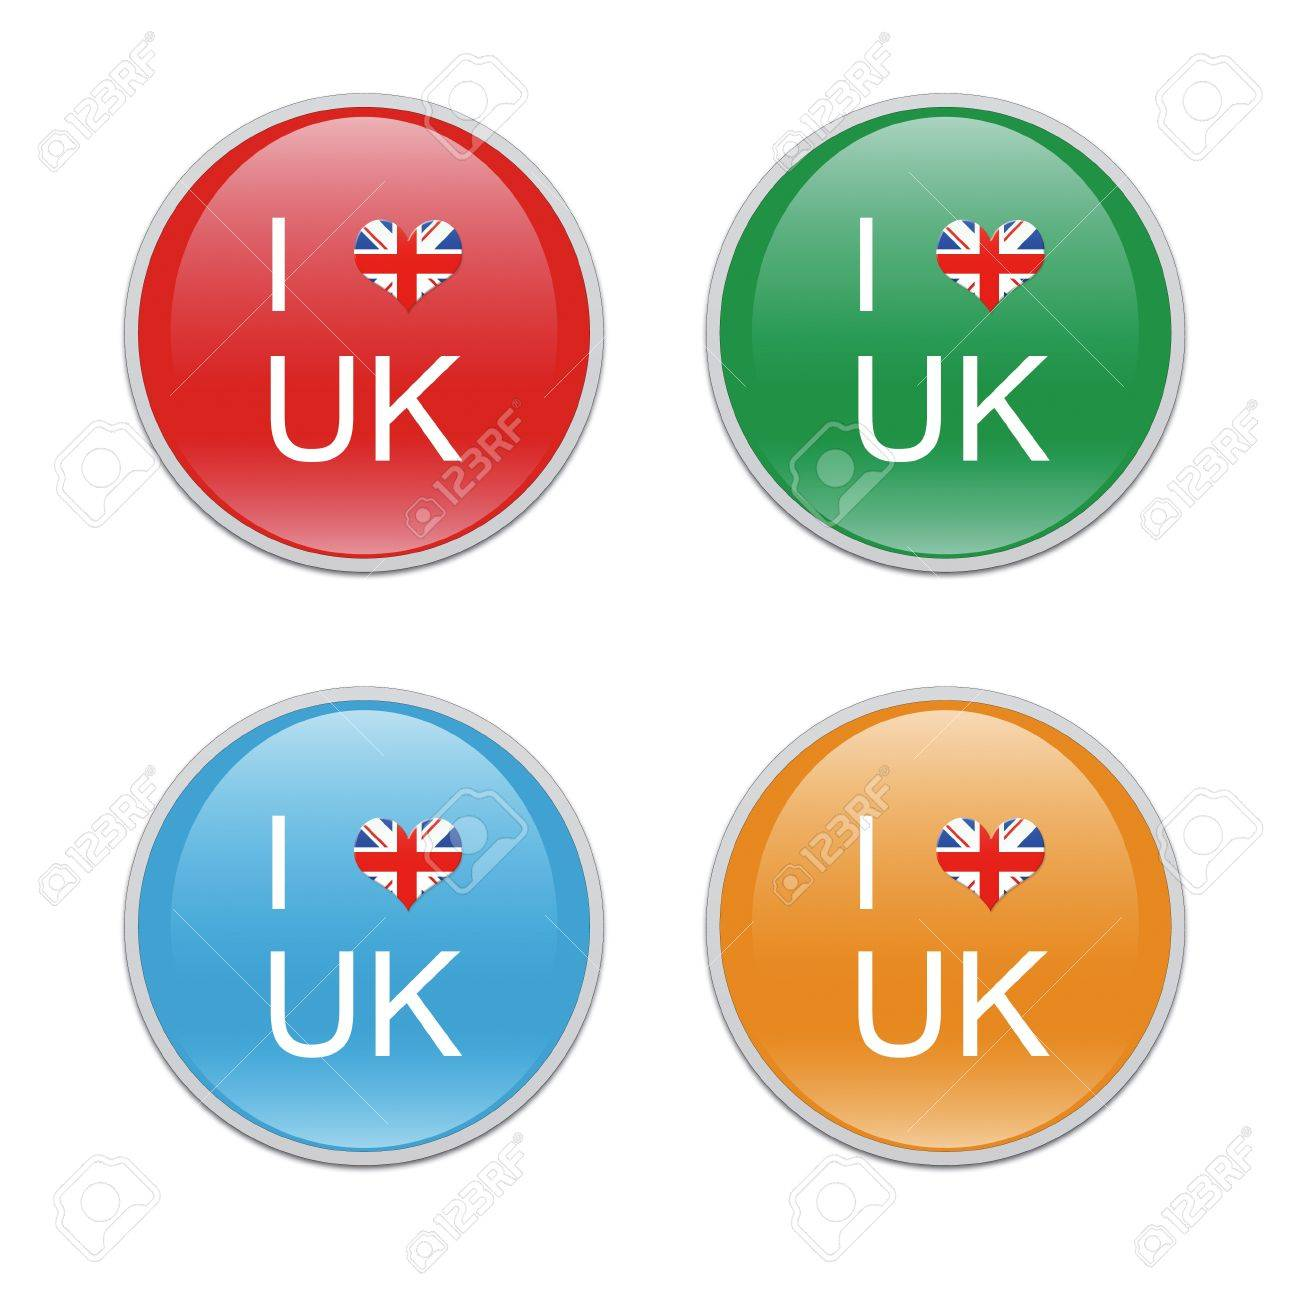 Icons to symbolize I Love UK in red, green, blue and orange colors Stock Photo - 22004876